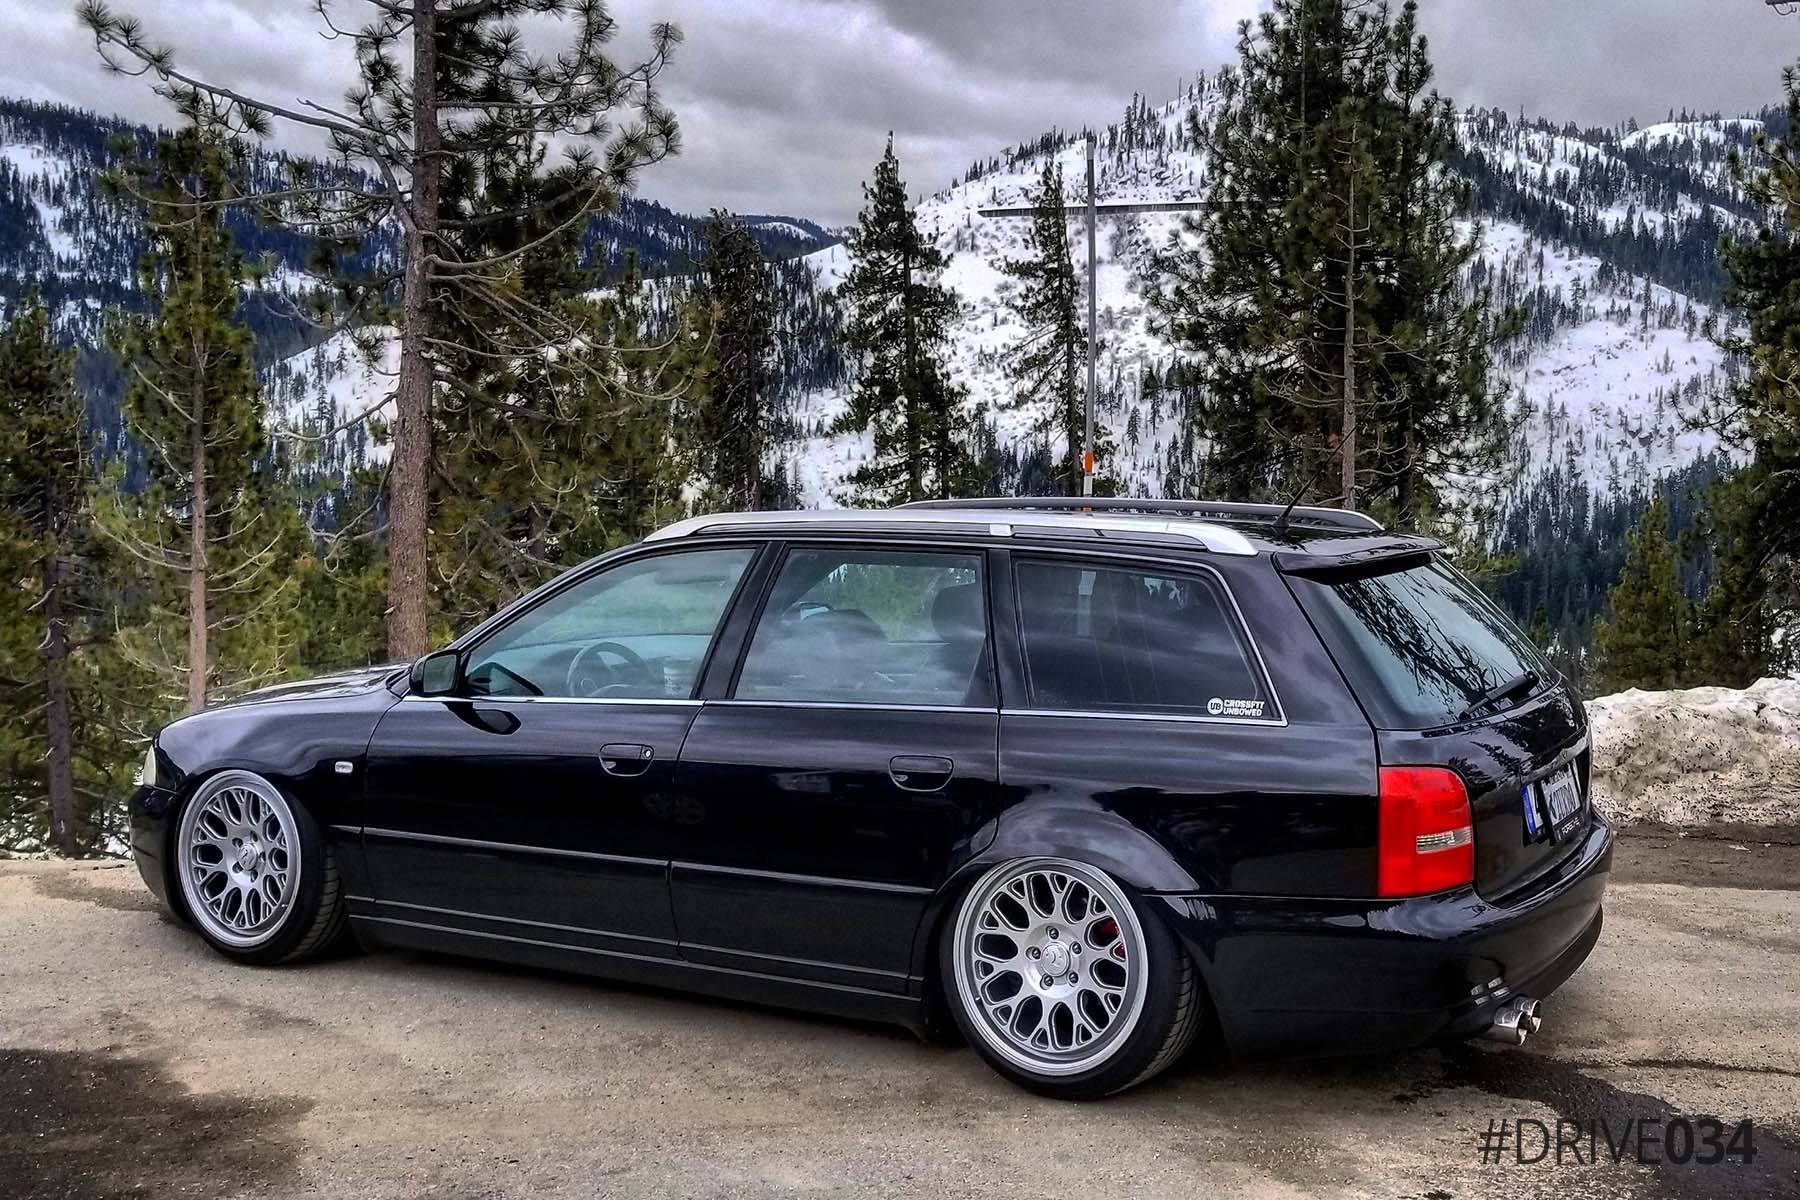 Lowered B5 Audi S4 Avant with Fifteen52 Wheels